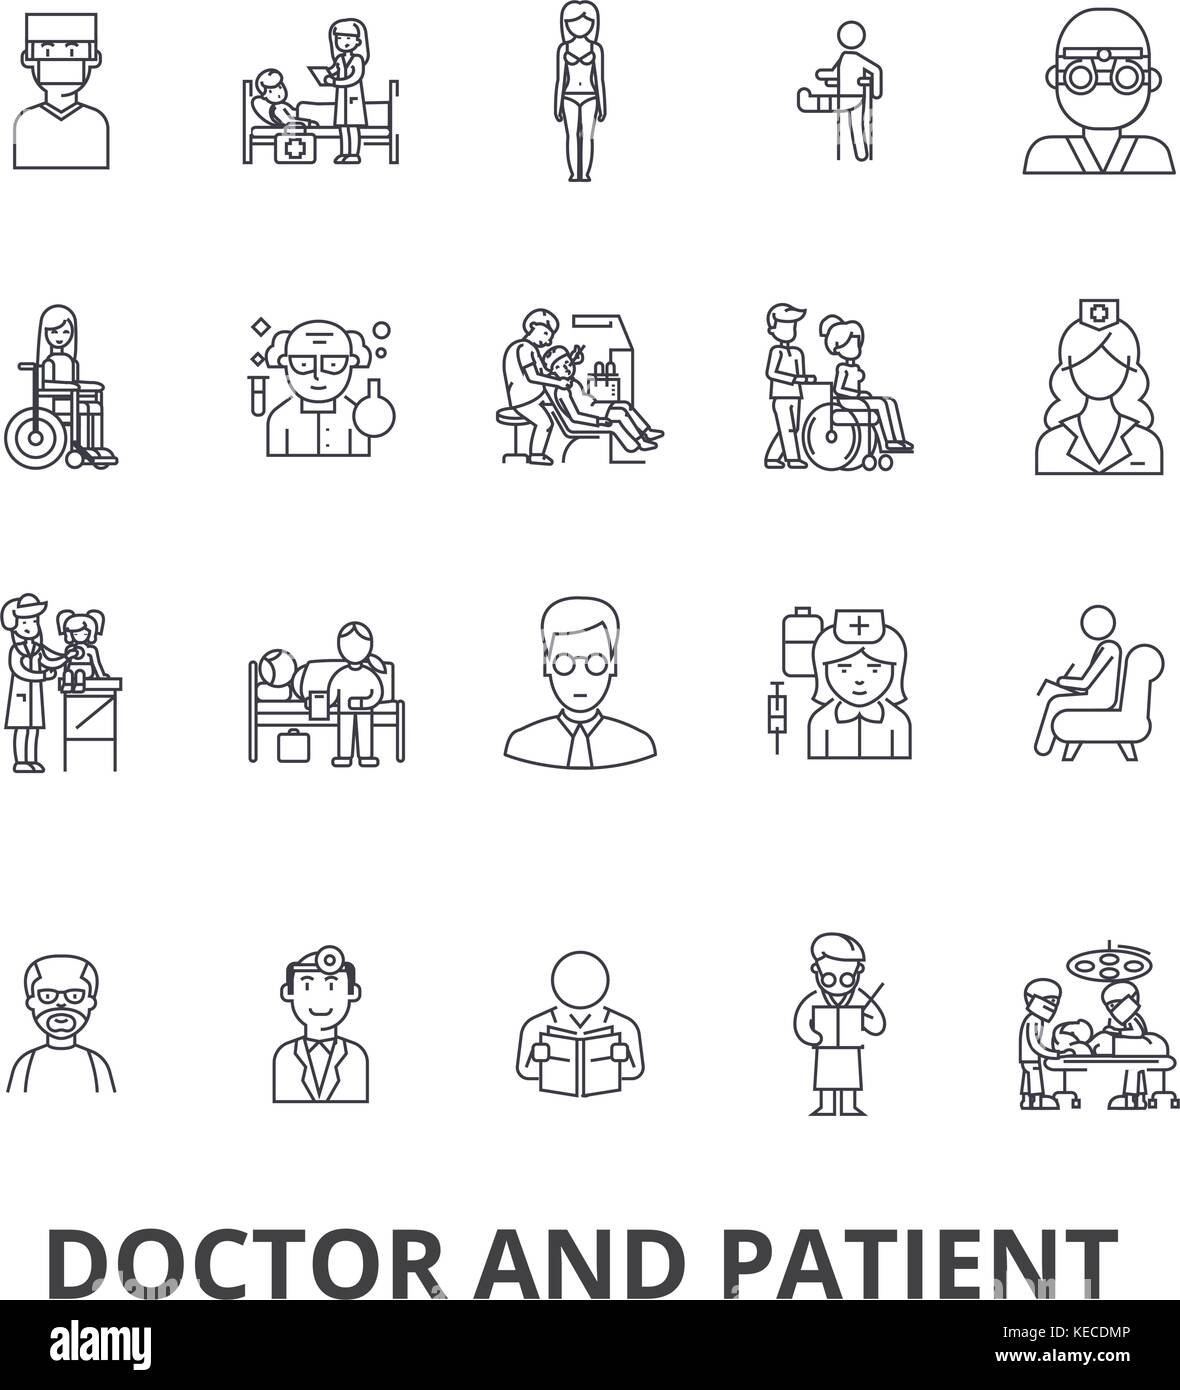 Photo De Cabinet Medical doctor and patient, cabinet, medical, hospital, consultation